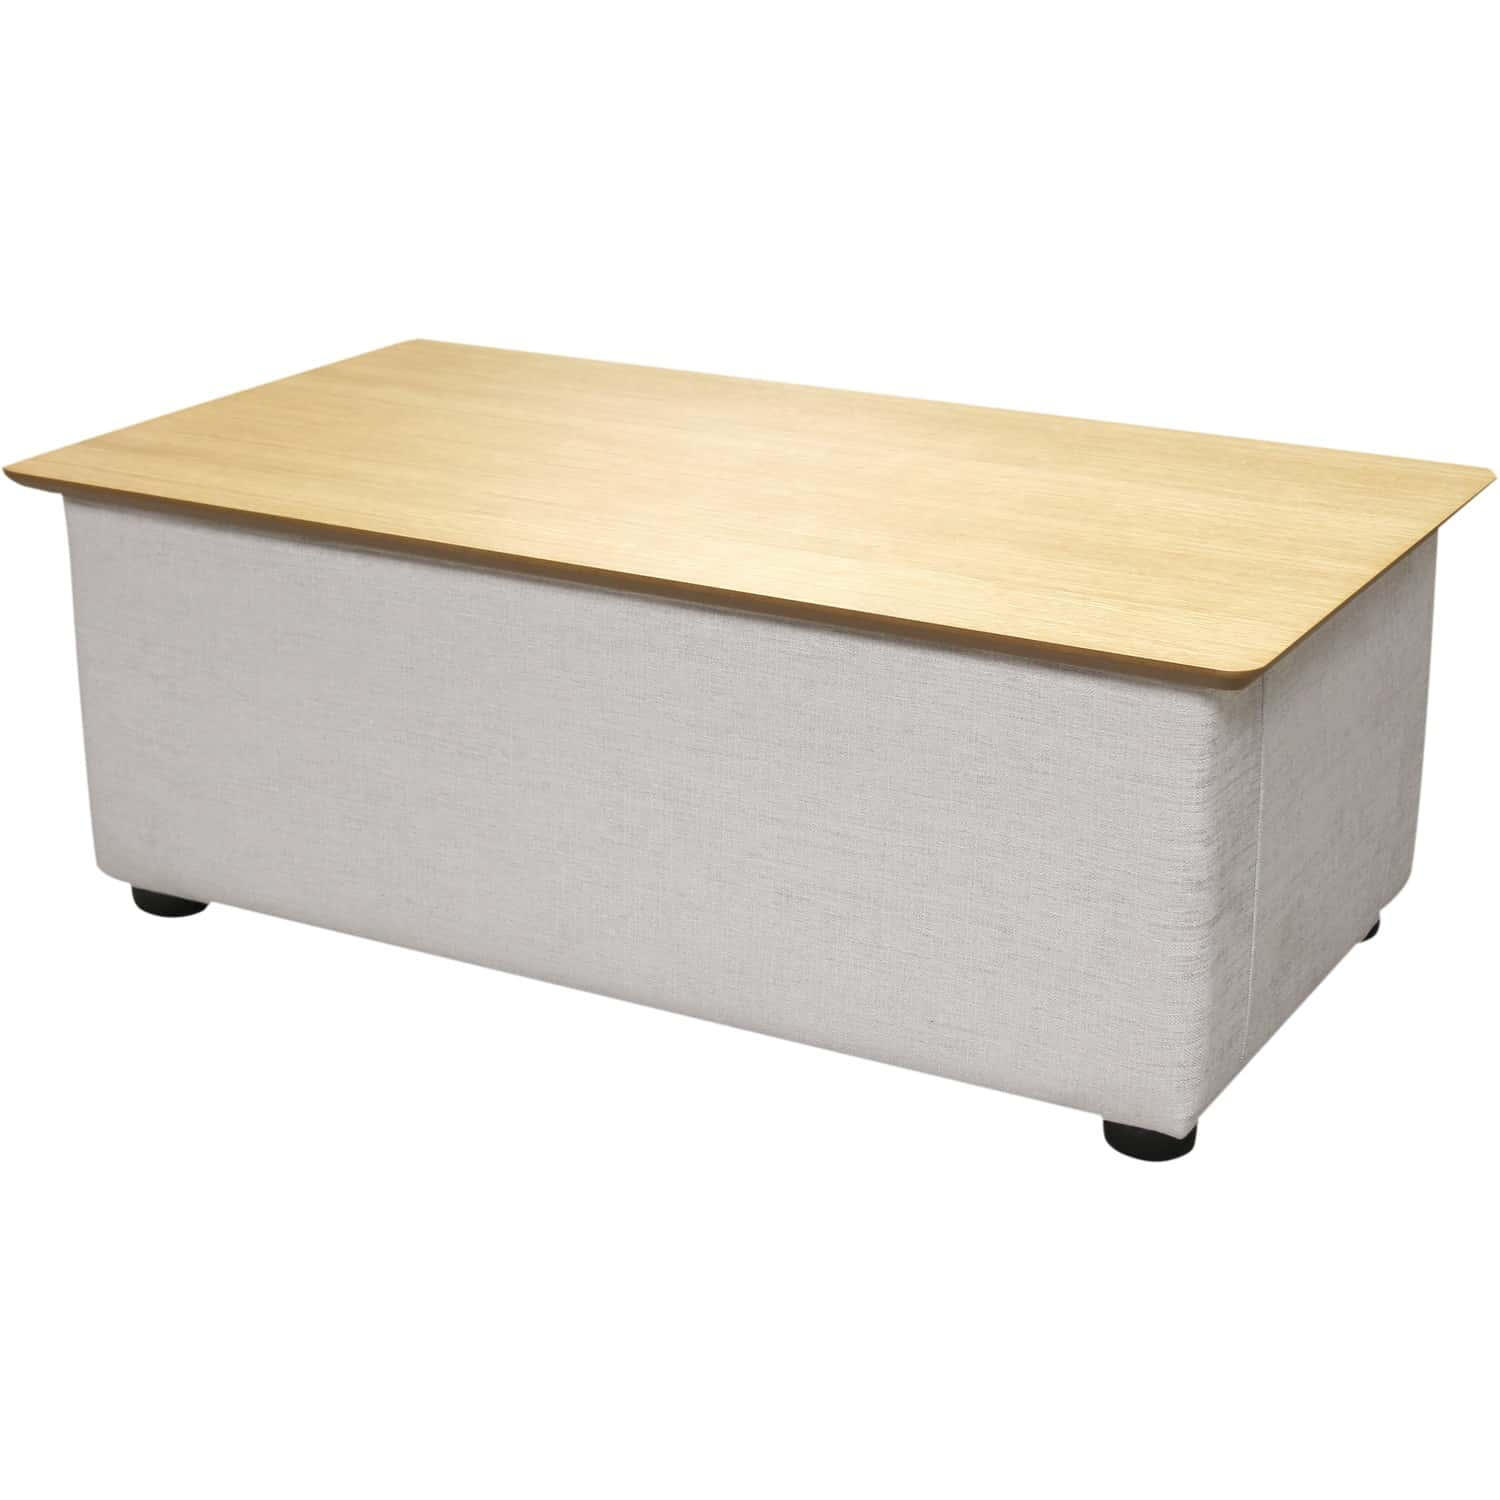 Table basse avec plateau relevable adam for Table basse plateau